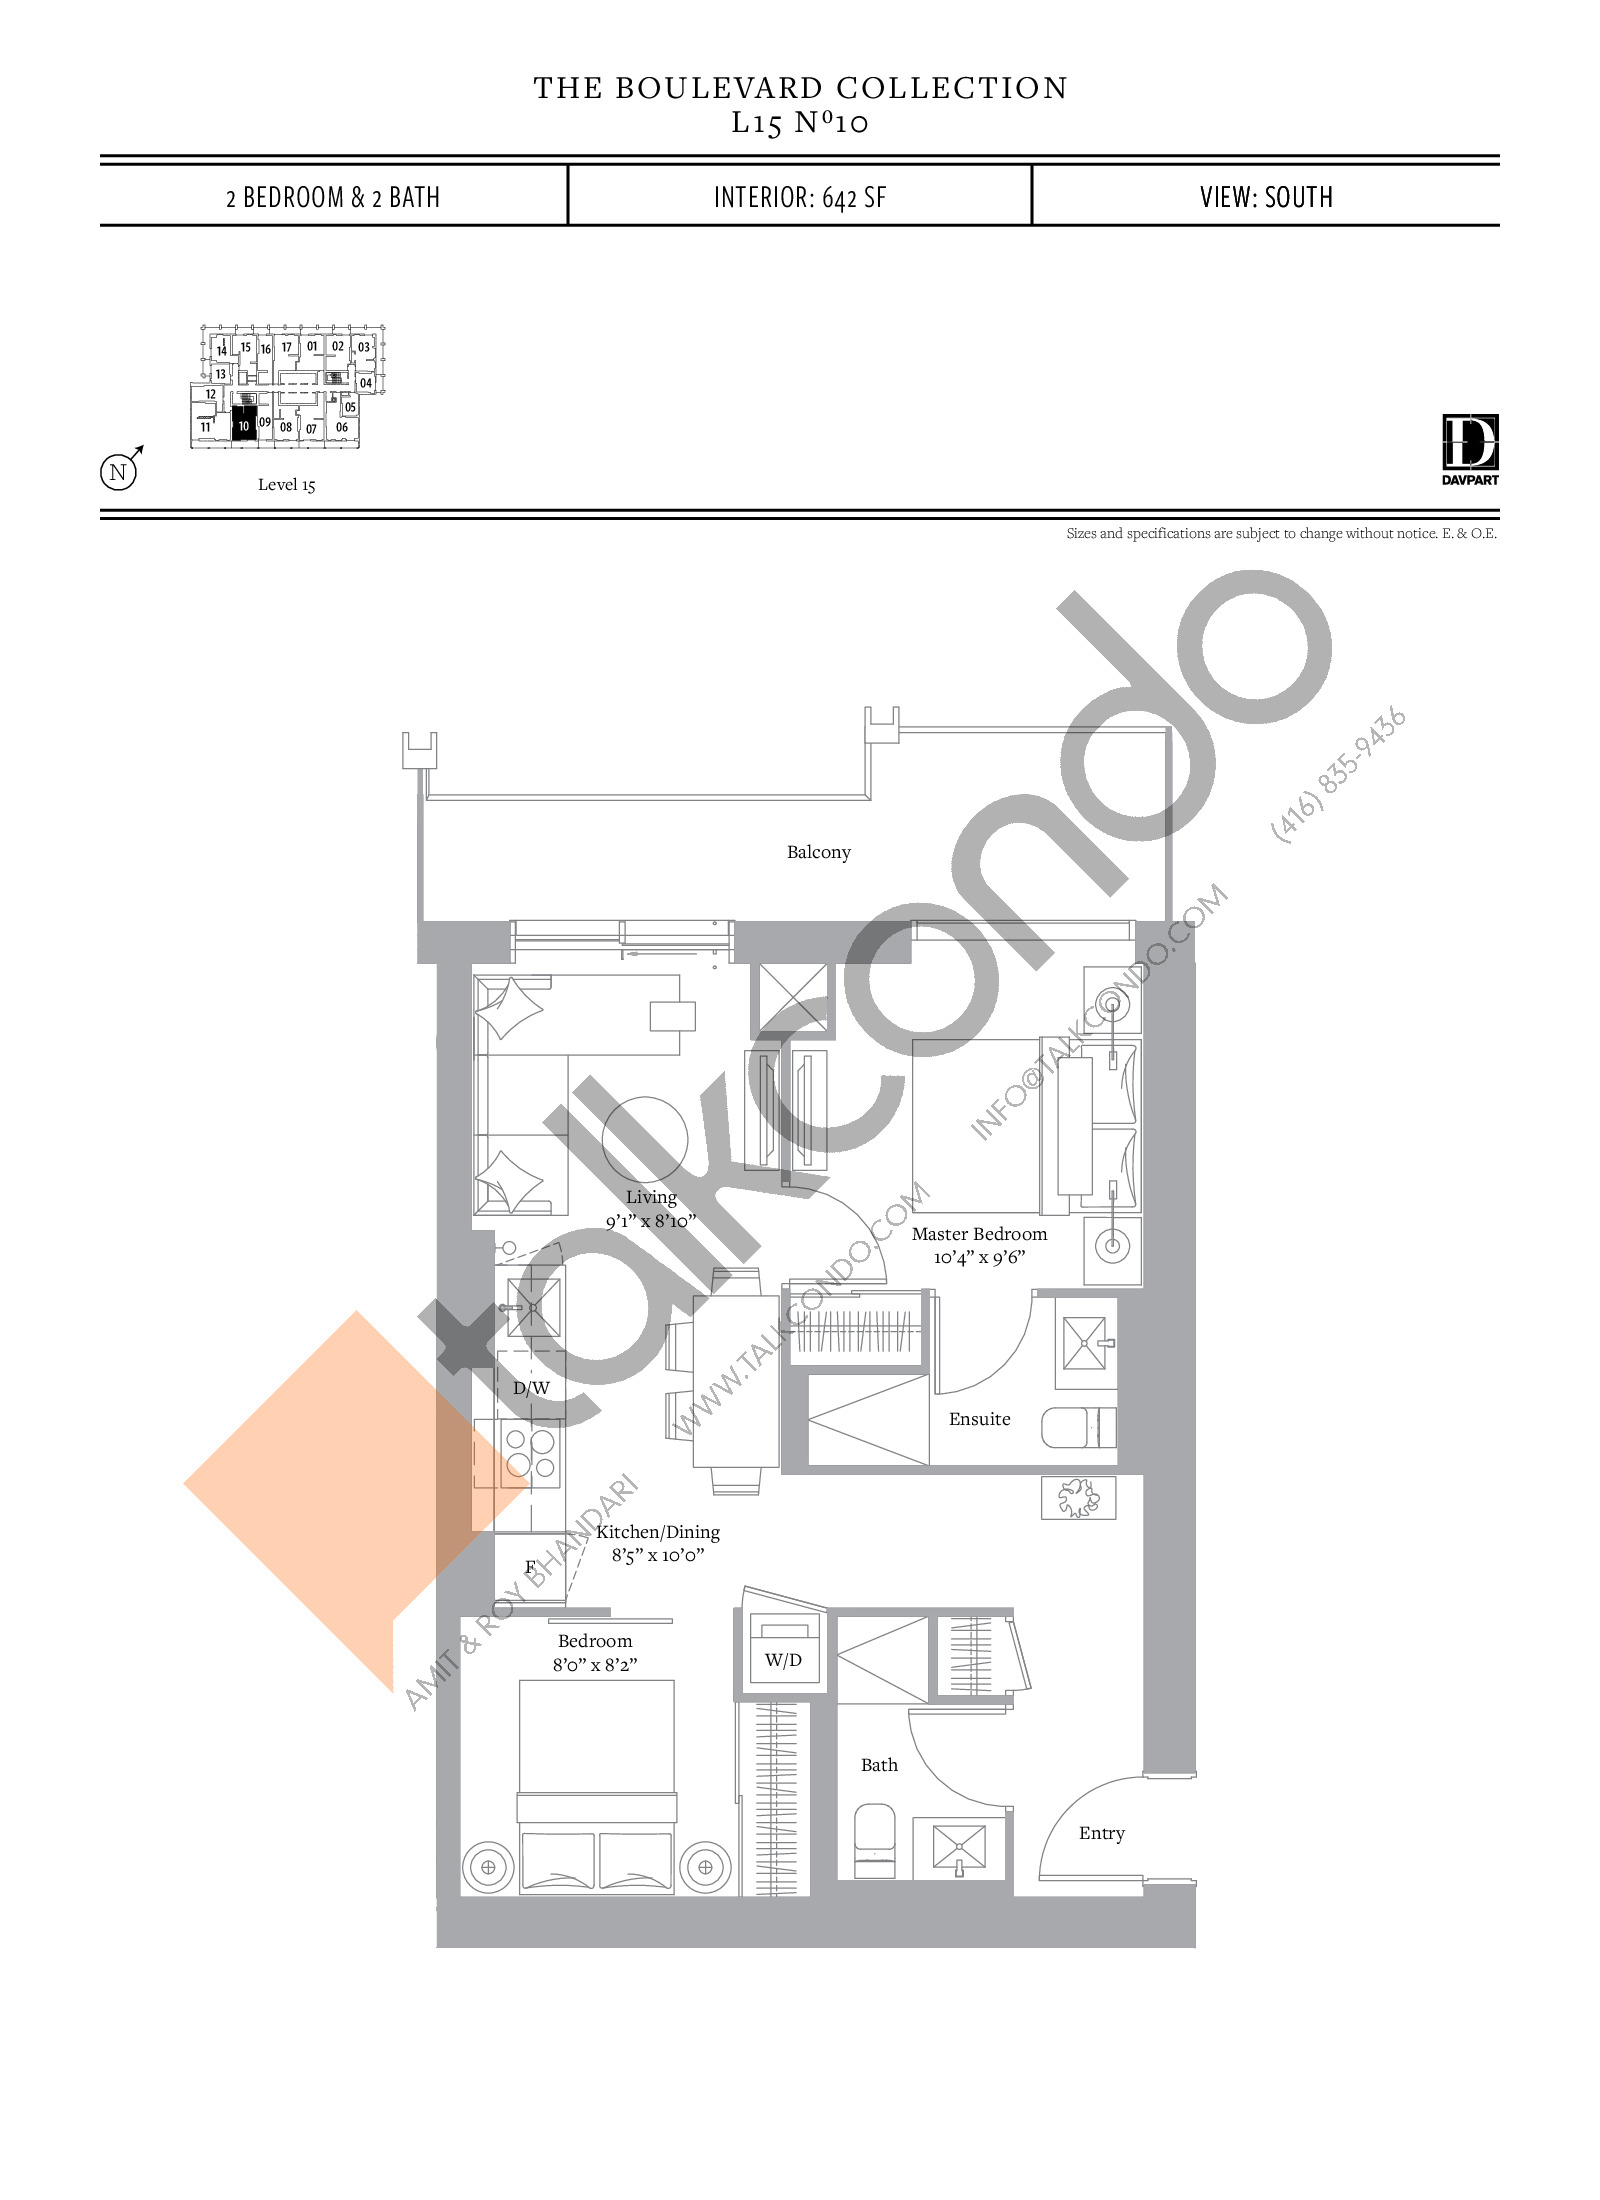 No 10 - The Boulevard Collection Floor Plan at The United Bldg. Condos - 642 sq.ft